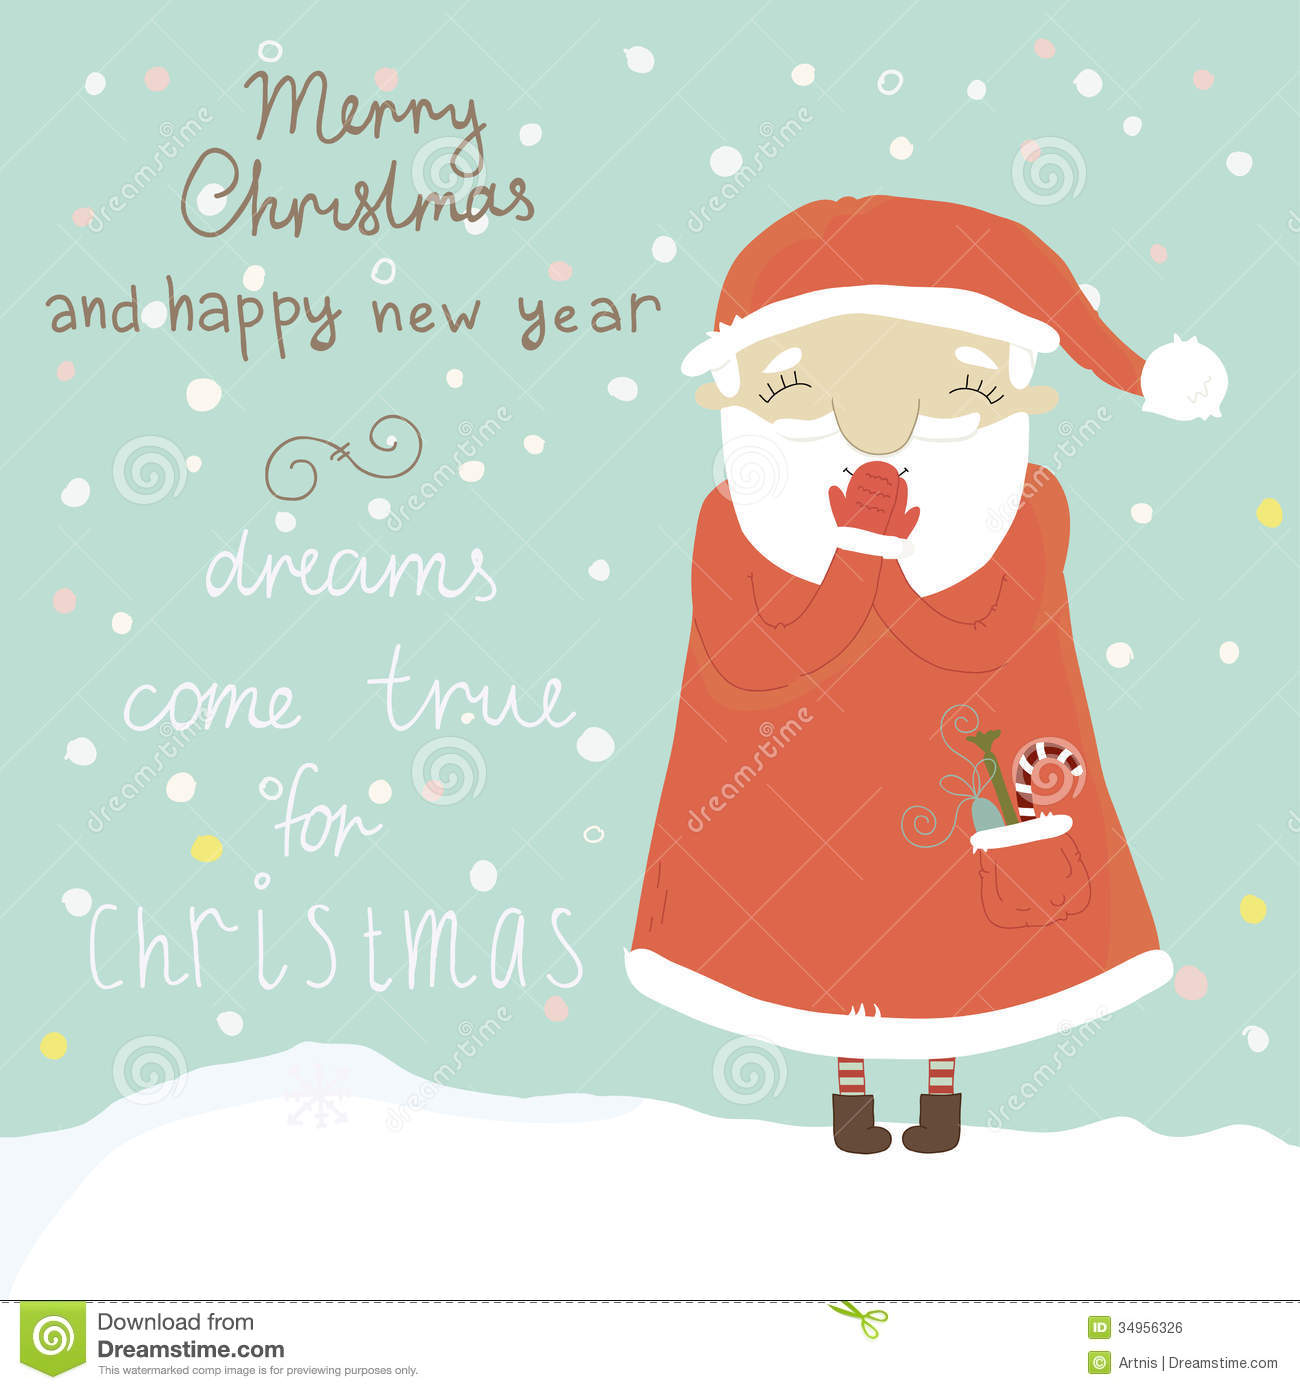 Carte Cadeau Wish Christmas Greeting Card With Santa Claus Royalty Free